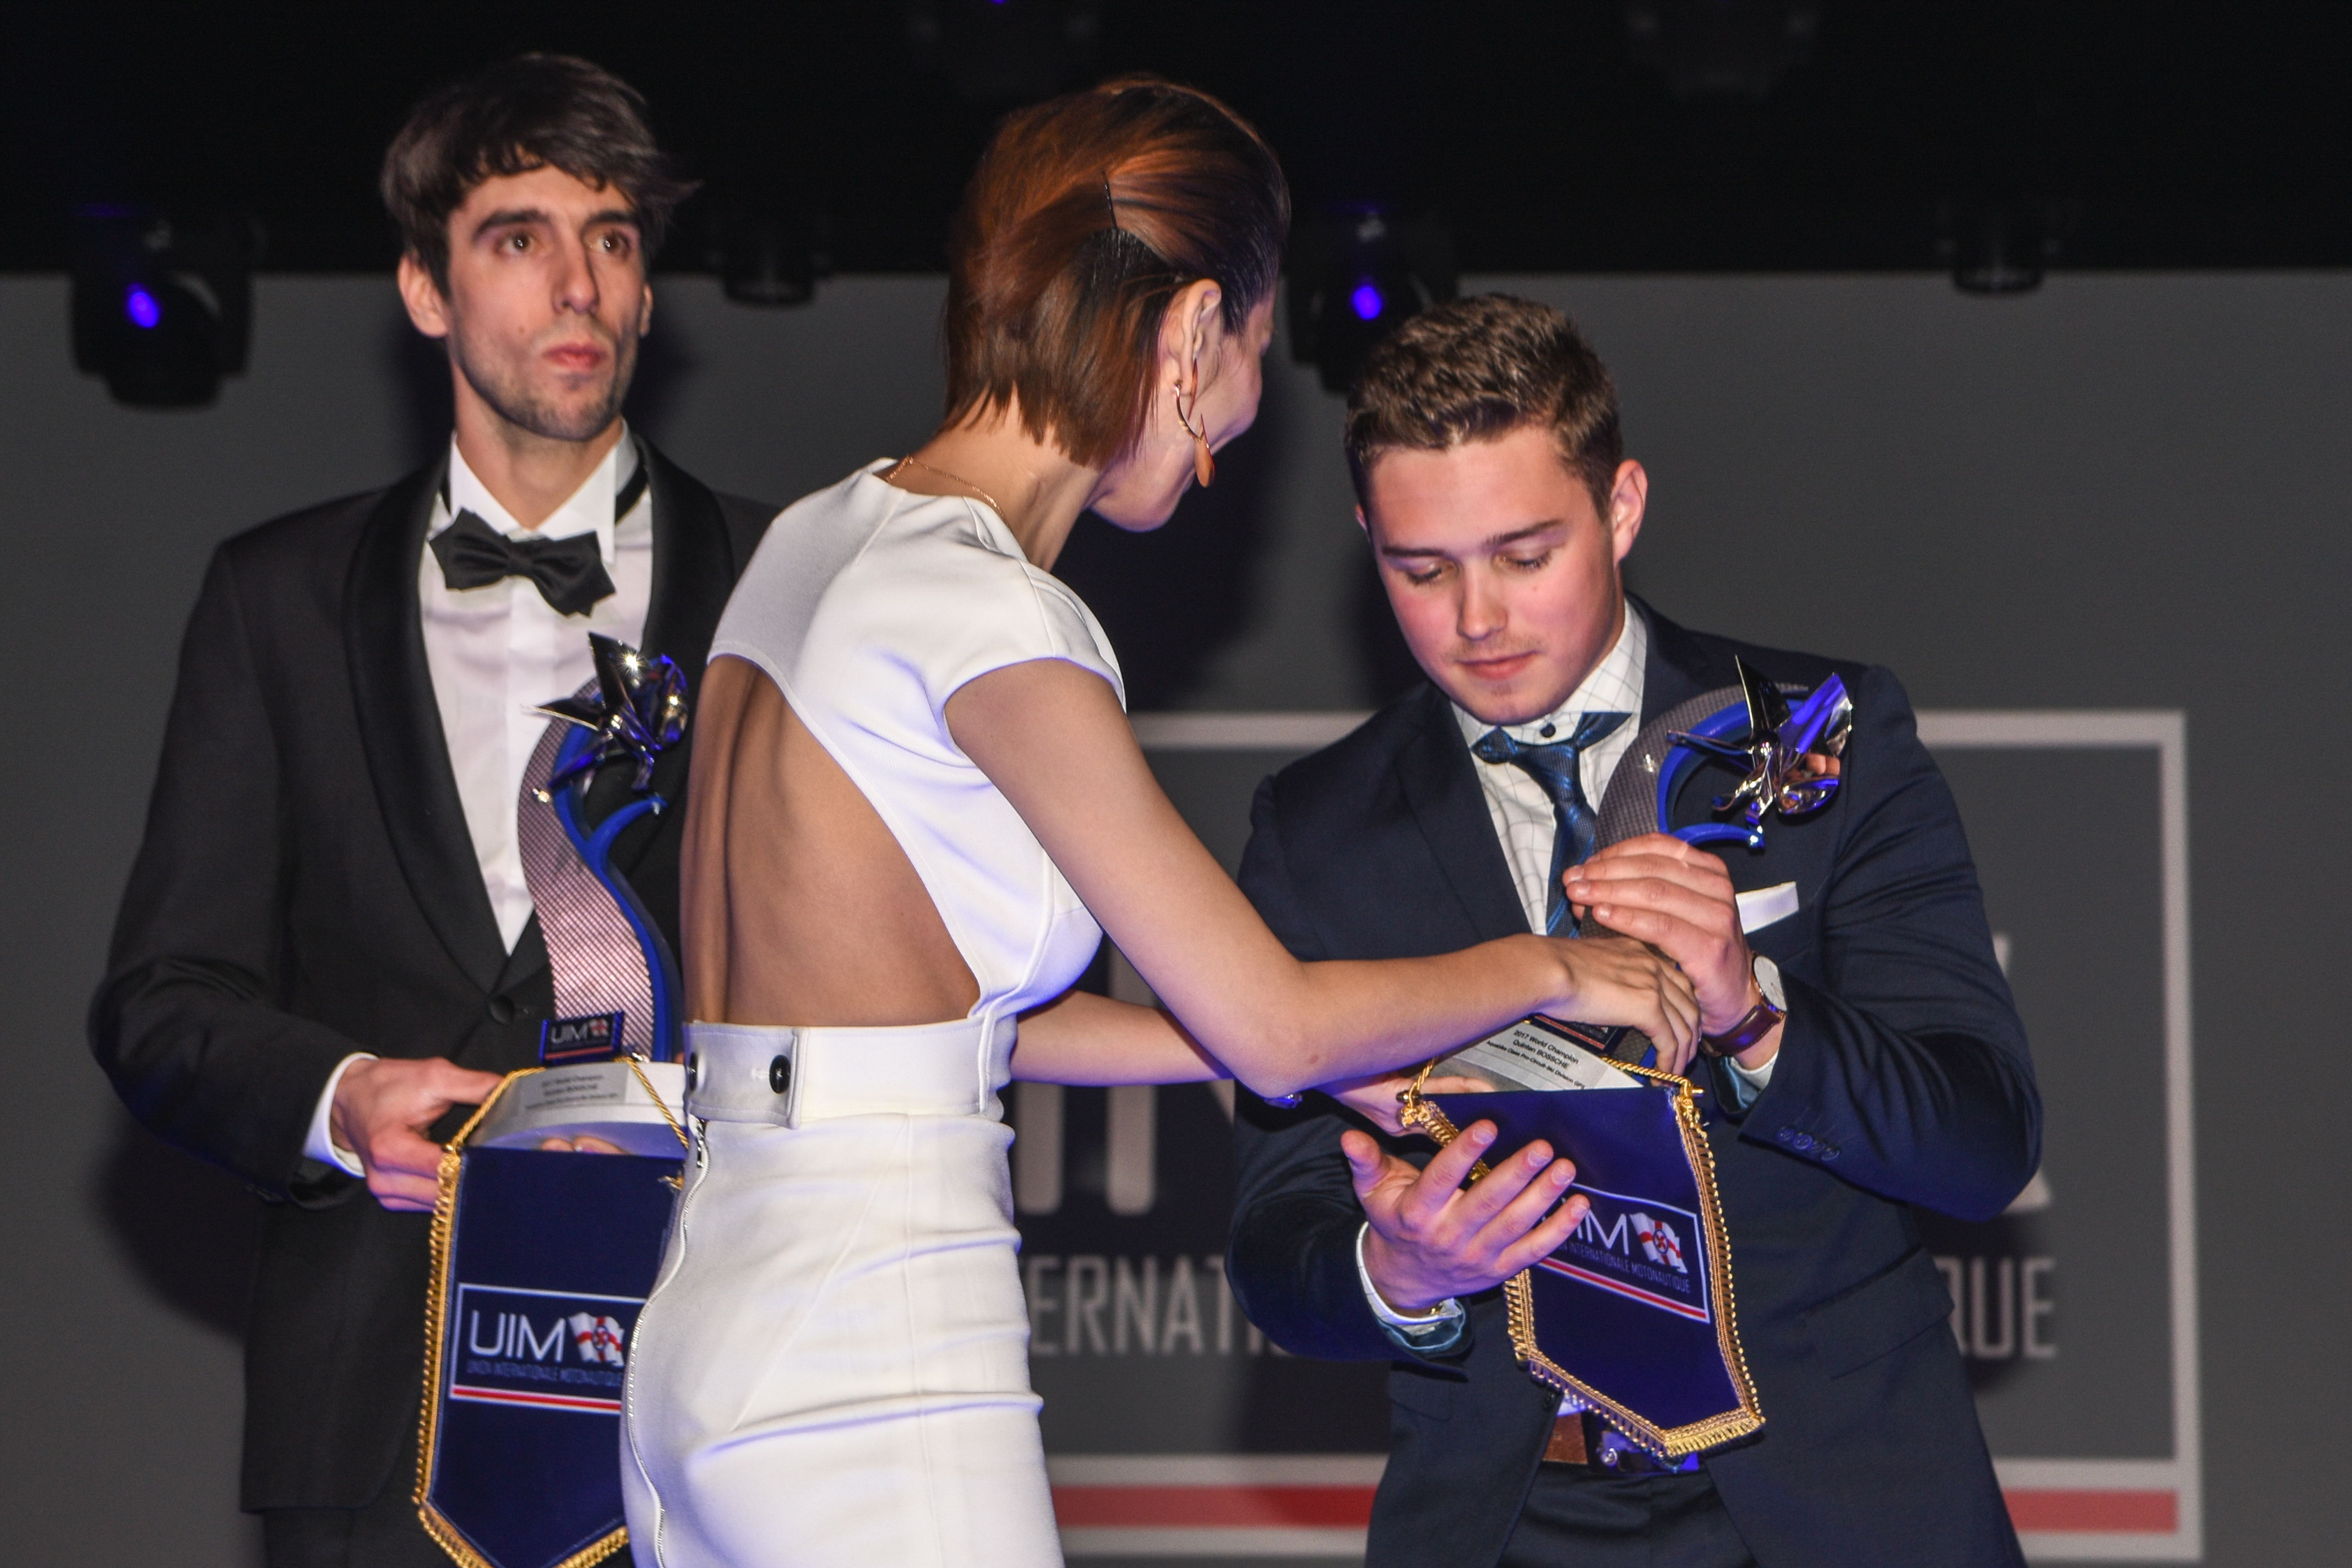 AQUABIKE'S STAR RIDERS OUT IN FORCE AT UIM GALA AWARDS IN MONACO